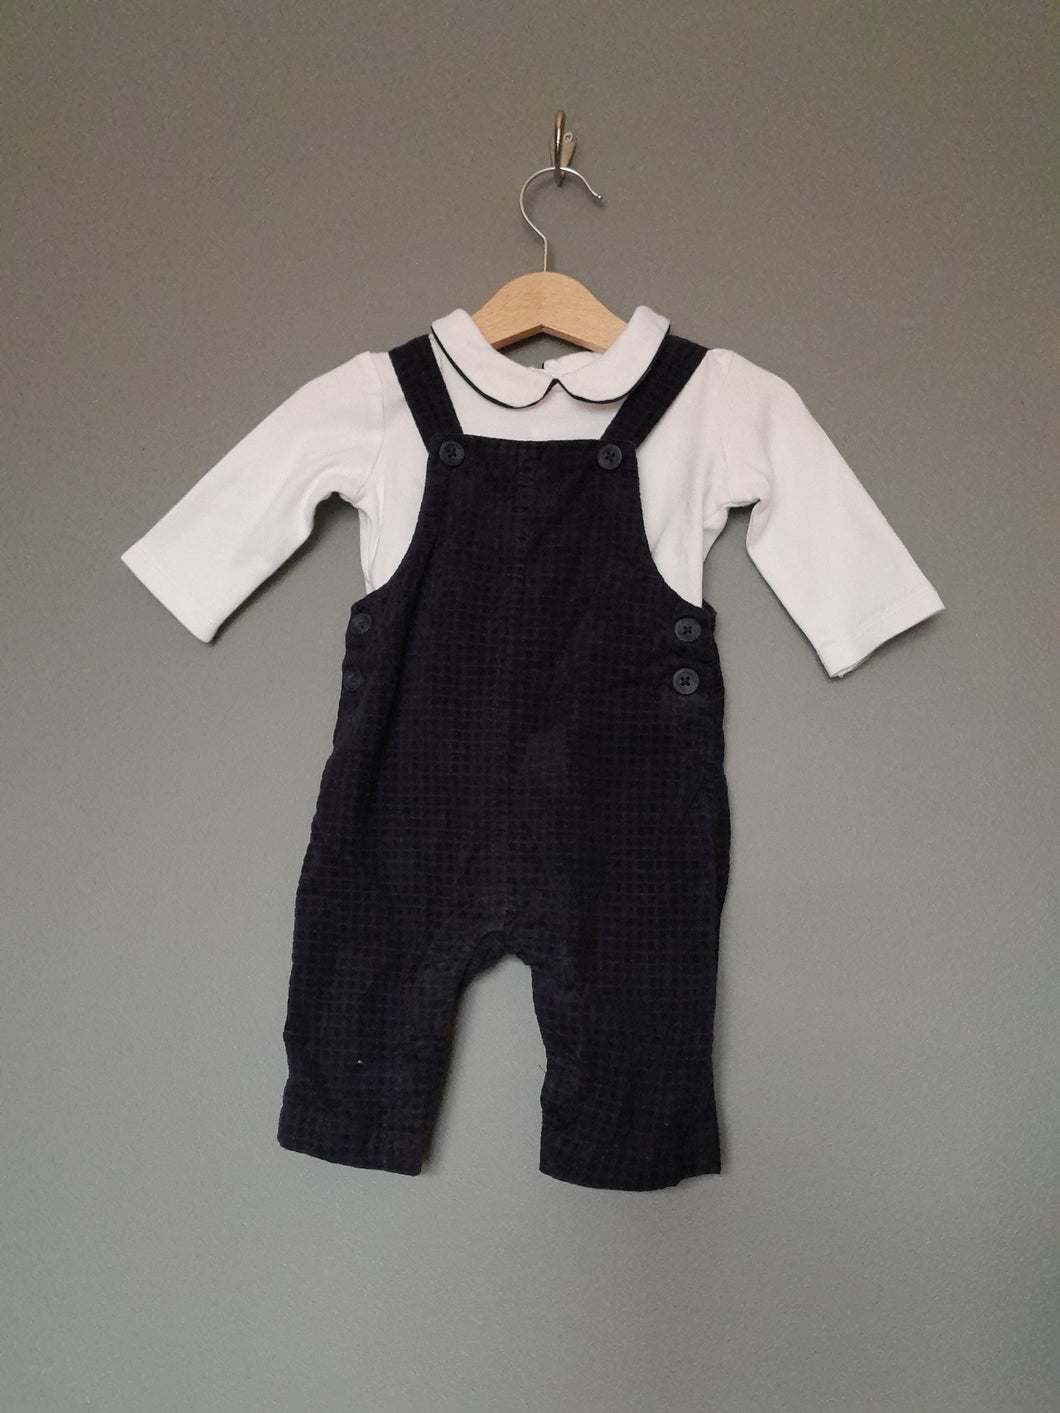 3-6 months Navy Dungarees & White Peter Pan collar top